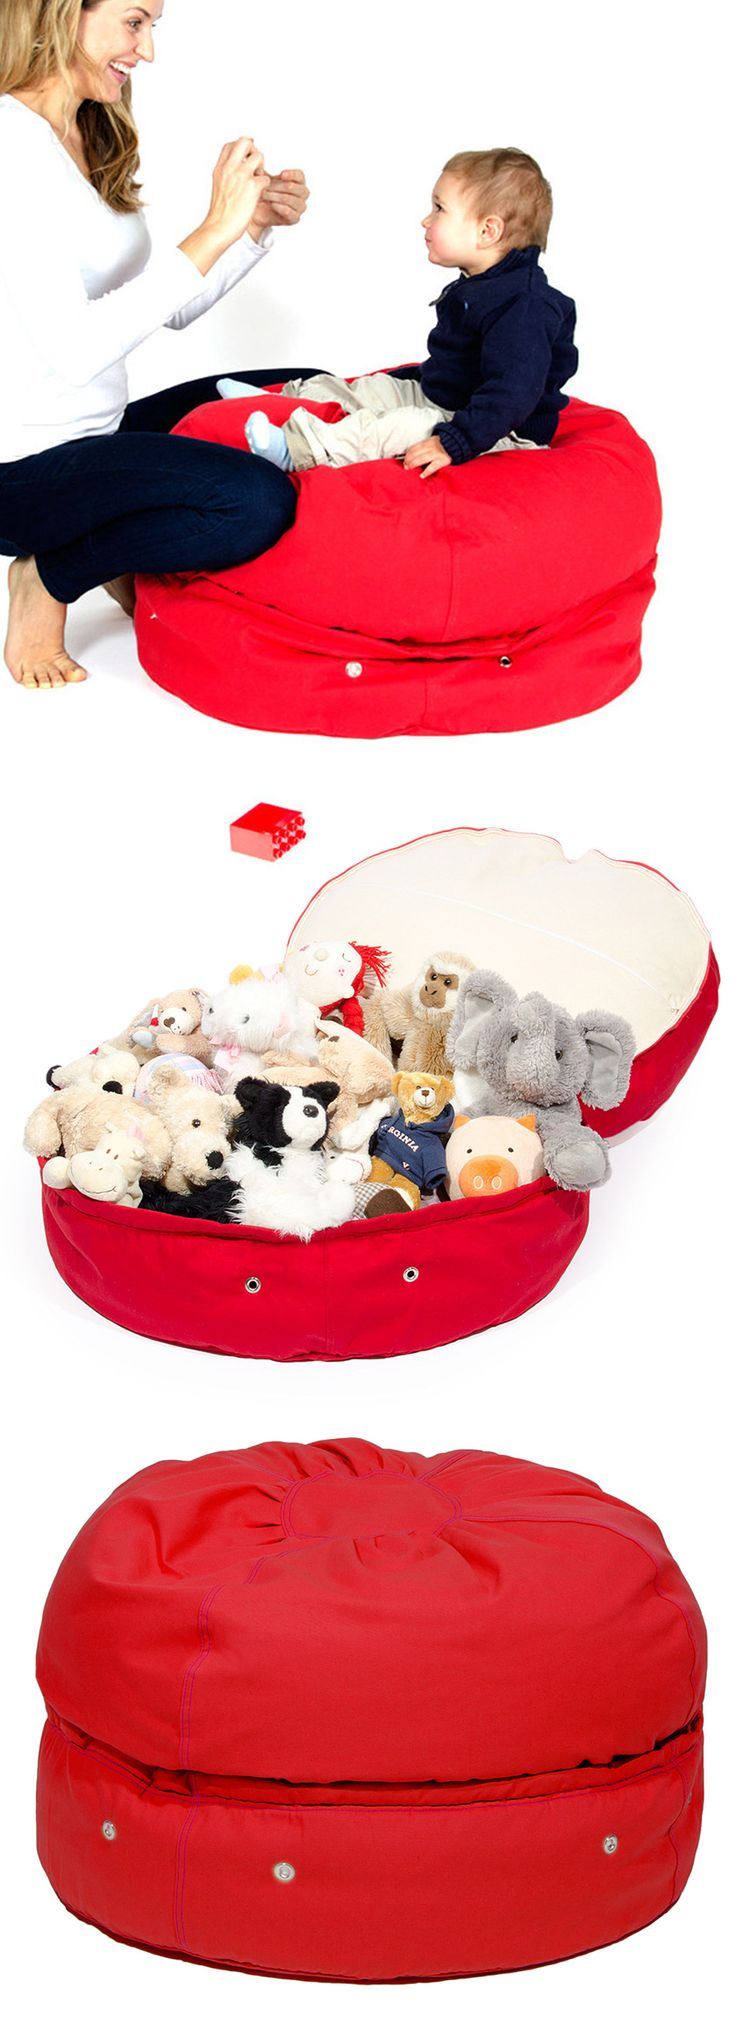 Red storage bean bag // great idea for all those soft toys, or spare bed linen! #product_design